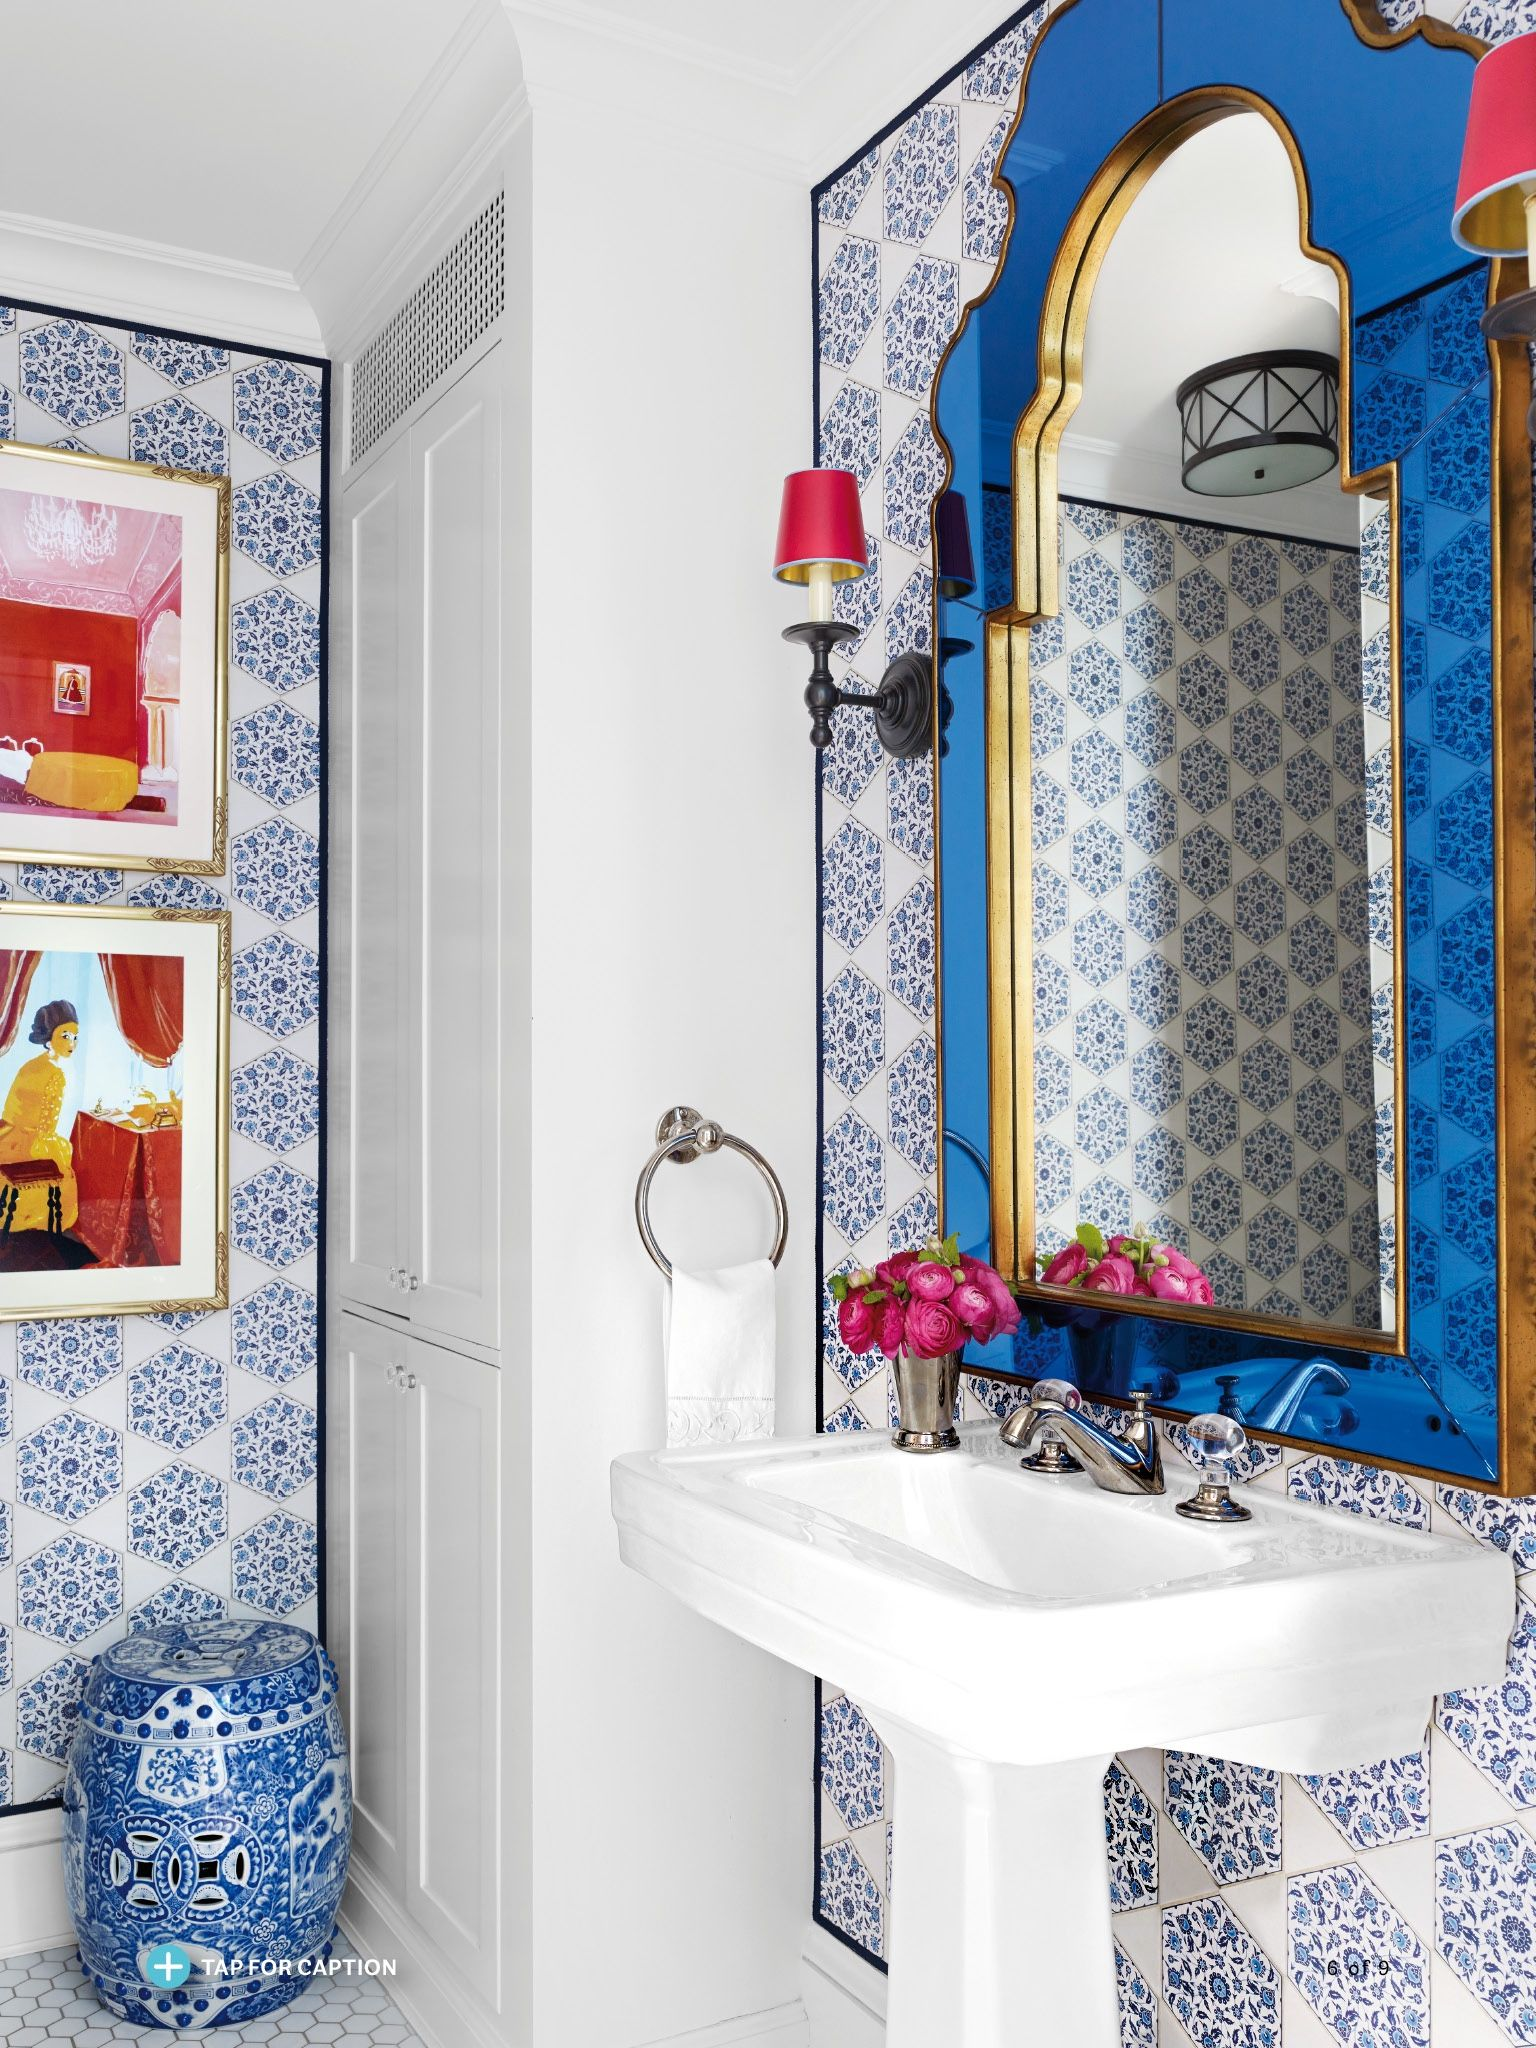 I saw this in the September 2016 issue of @HouseBeautiful.   http://bit.ly/1ySrLfl